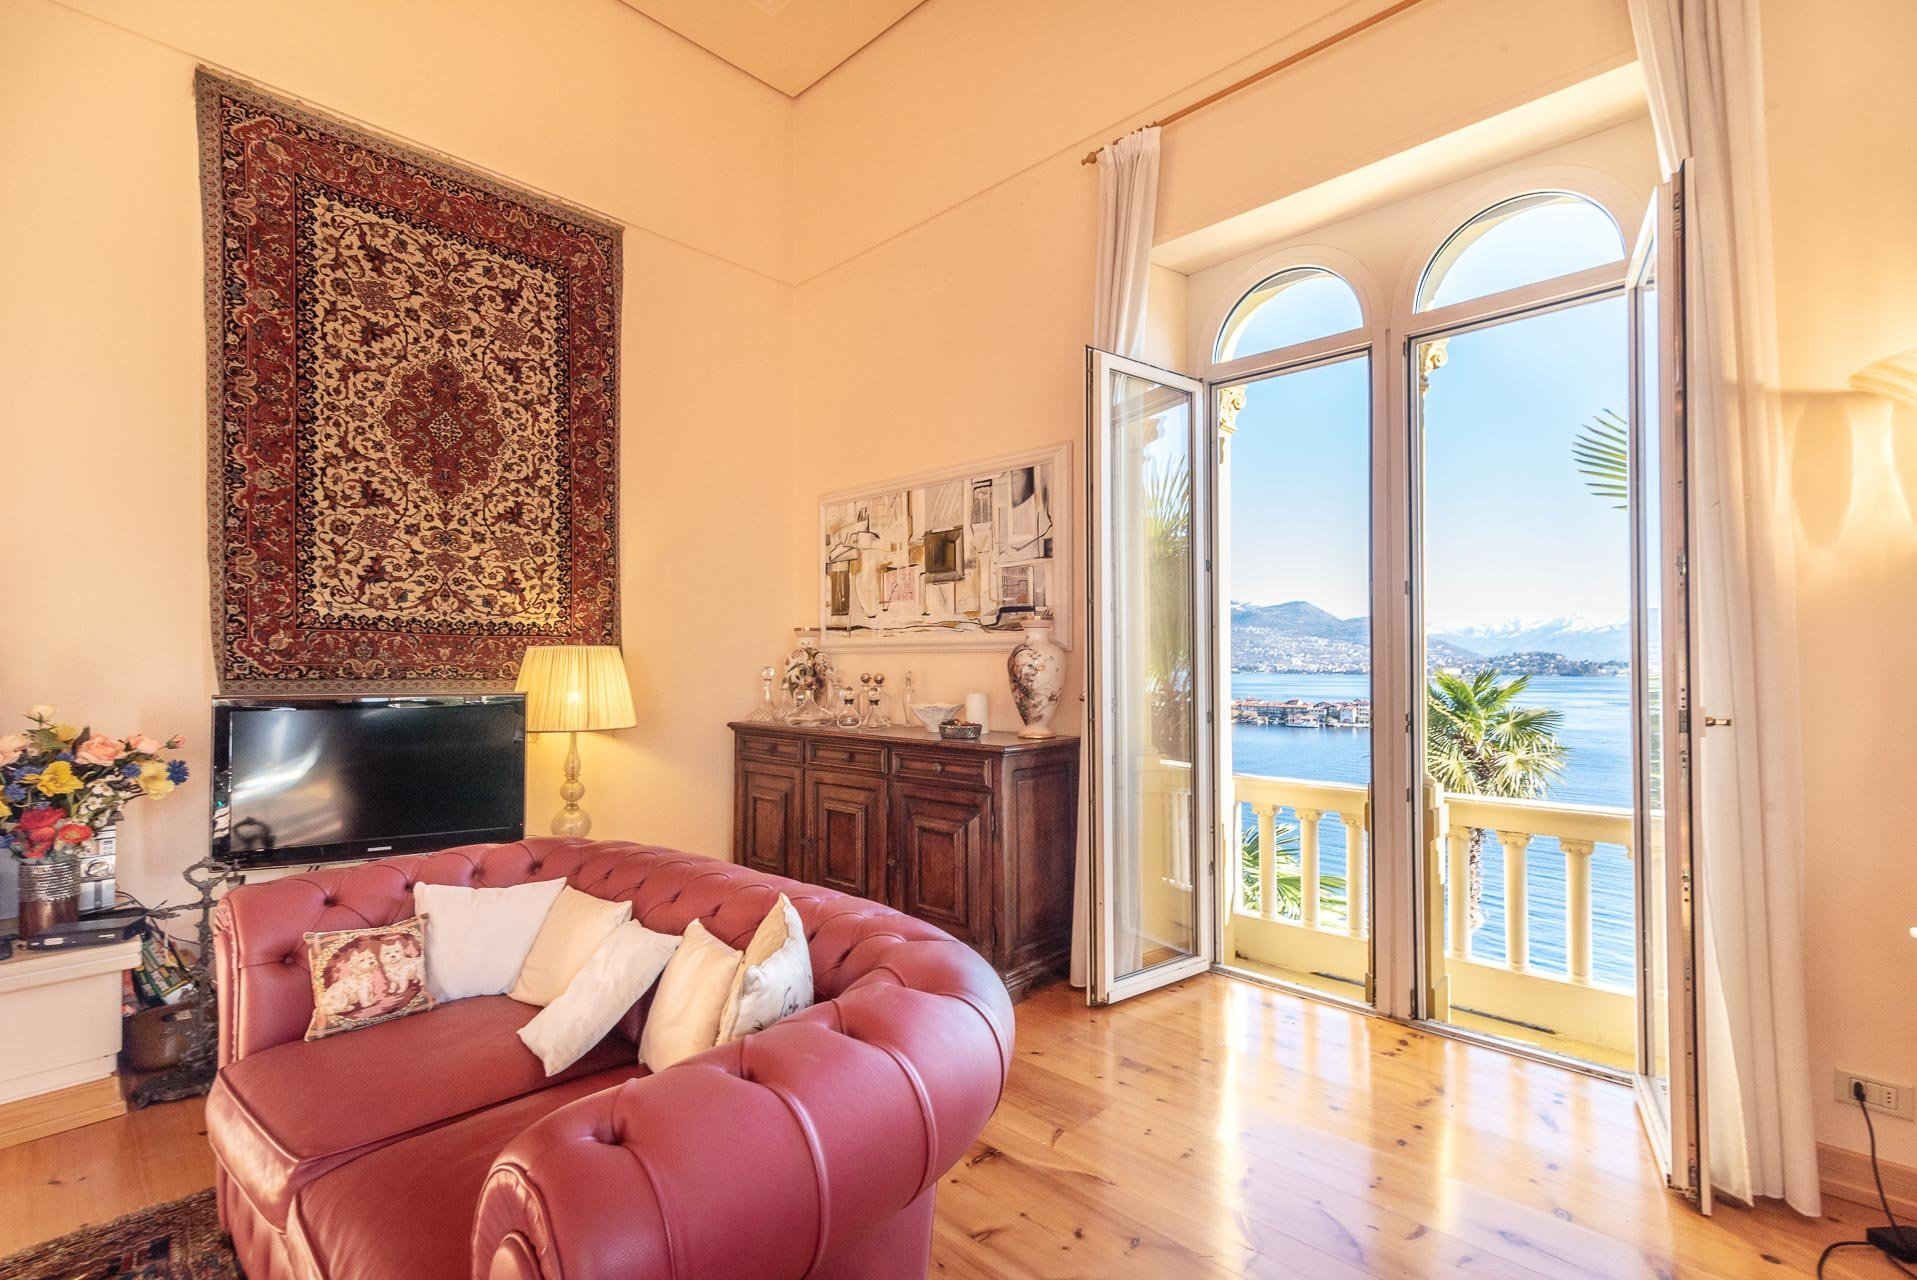 Lake view apartment for sell in Baveno - lounge with balcony